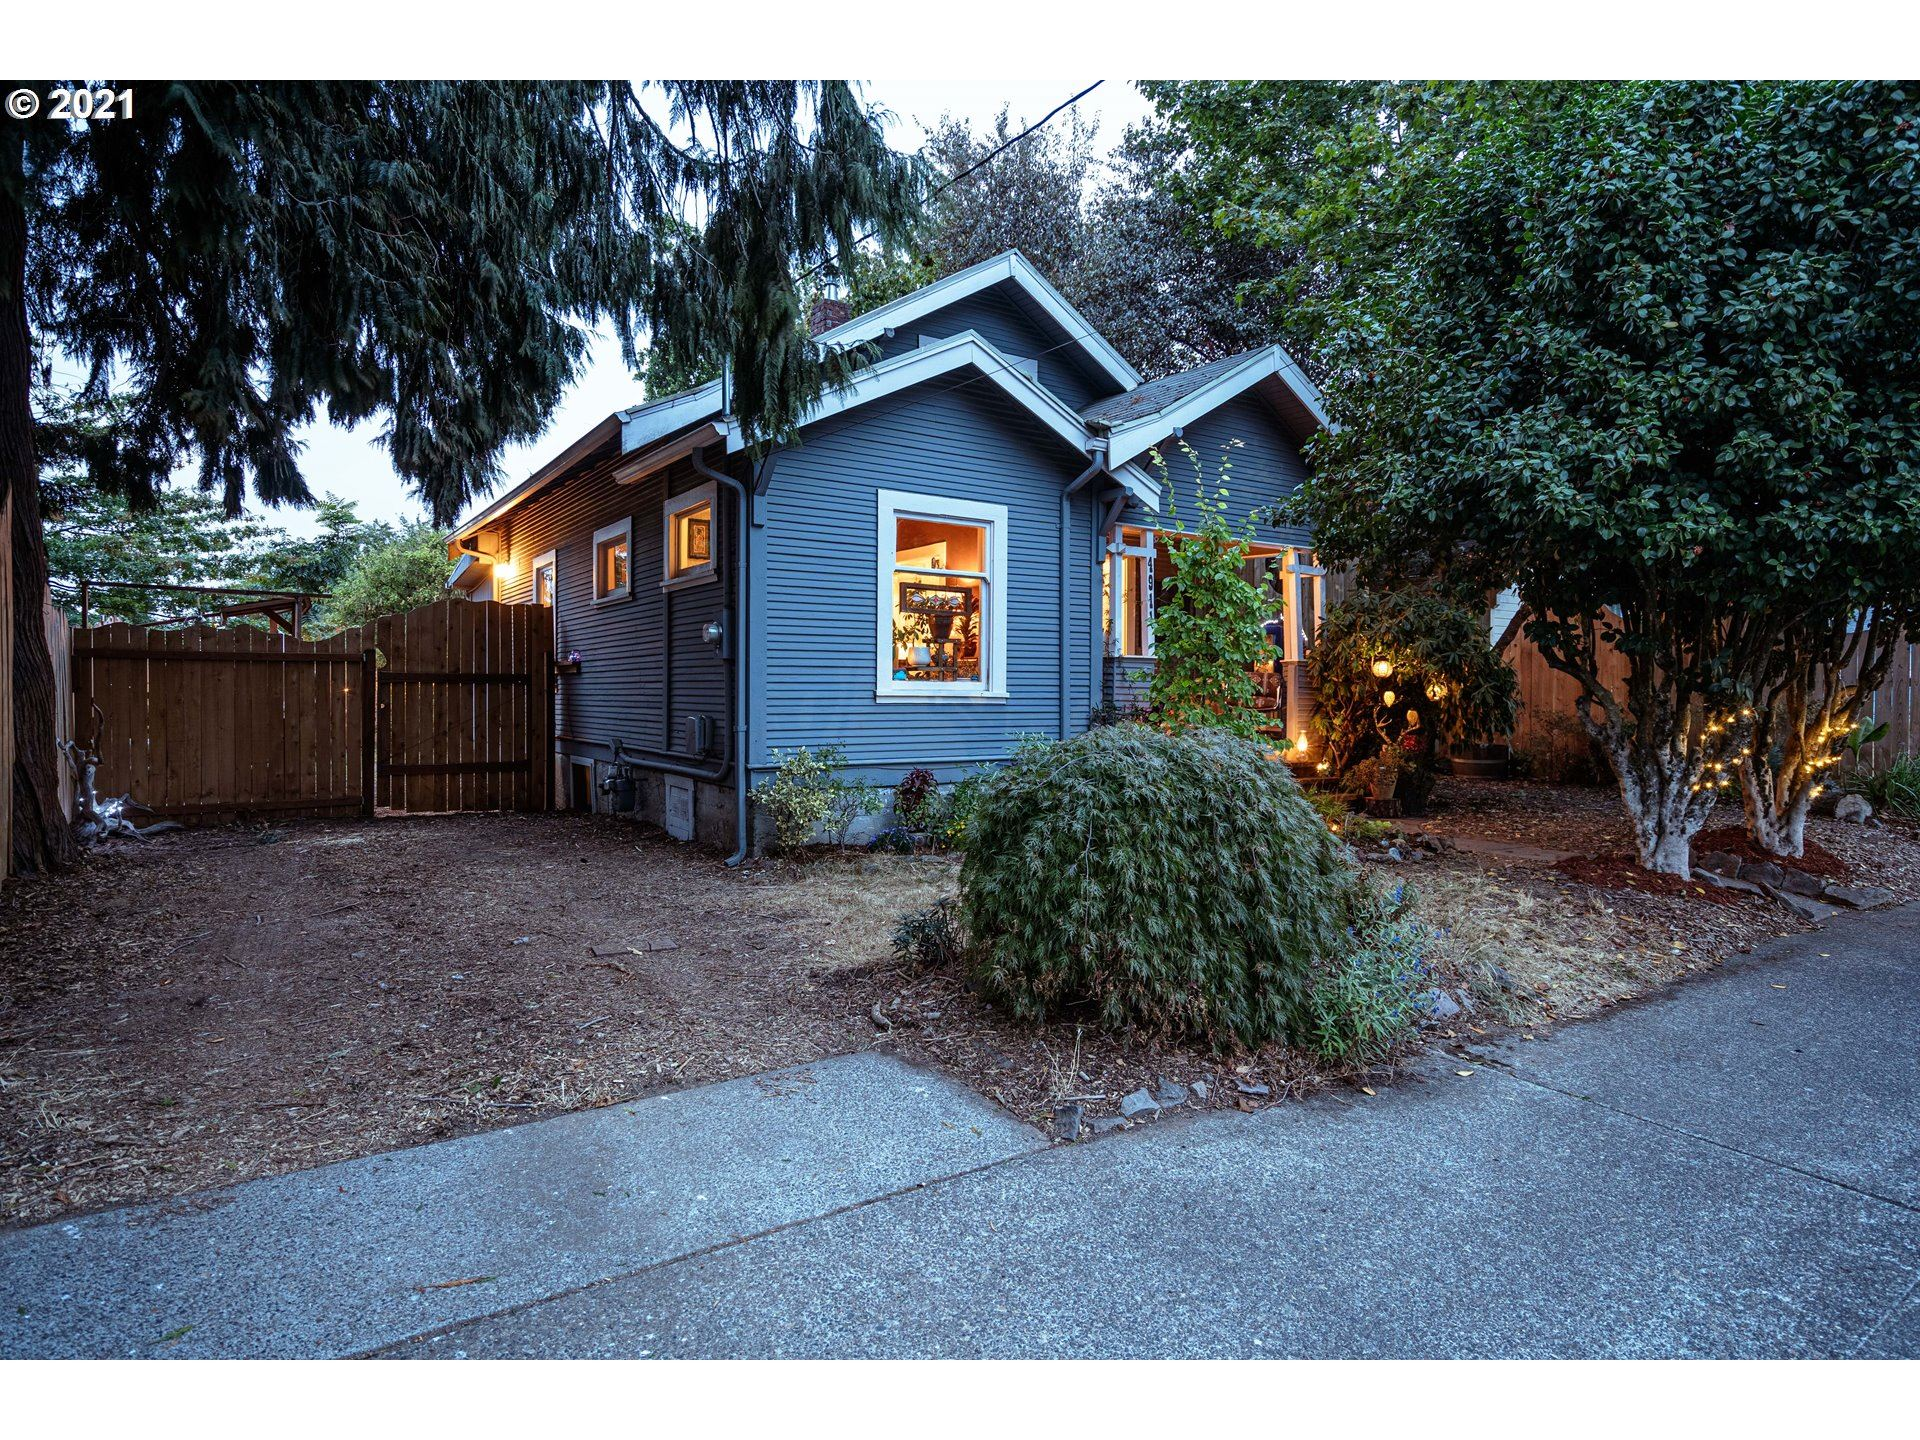 4911 SE 84TH AVE, Portland, OR 97266 - MLS#: 21505609